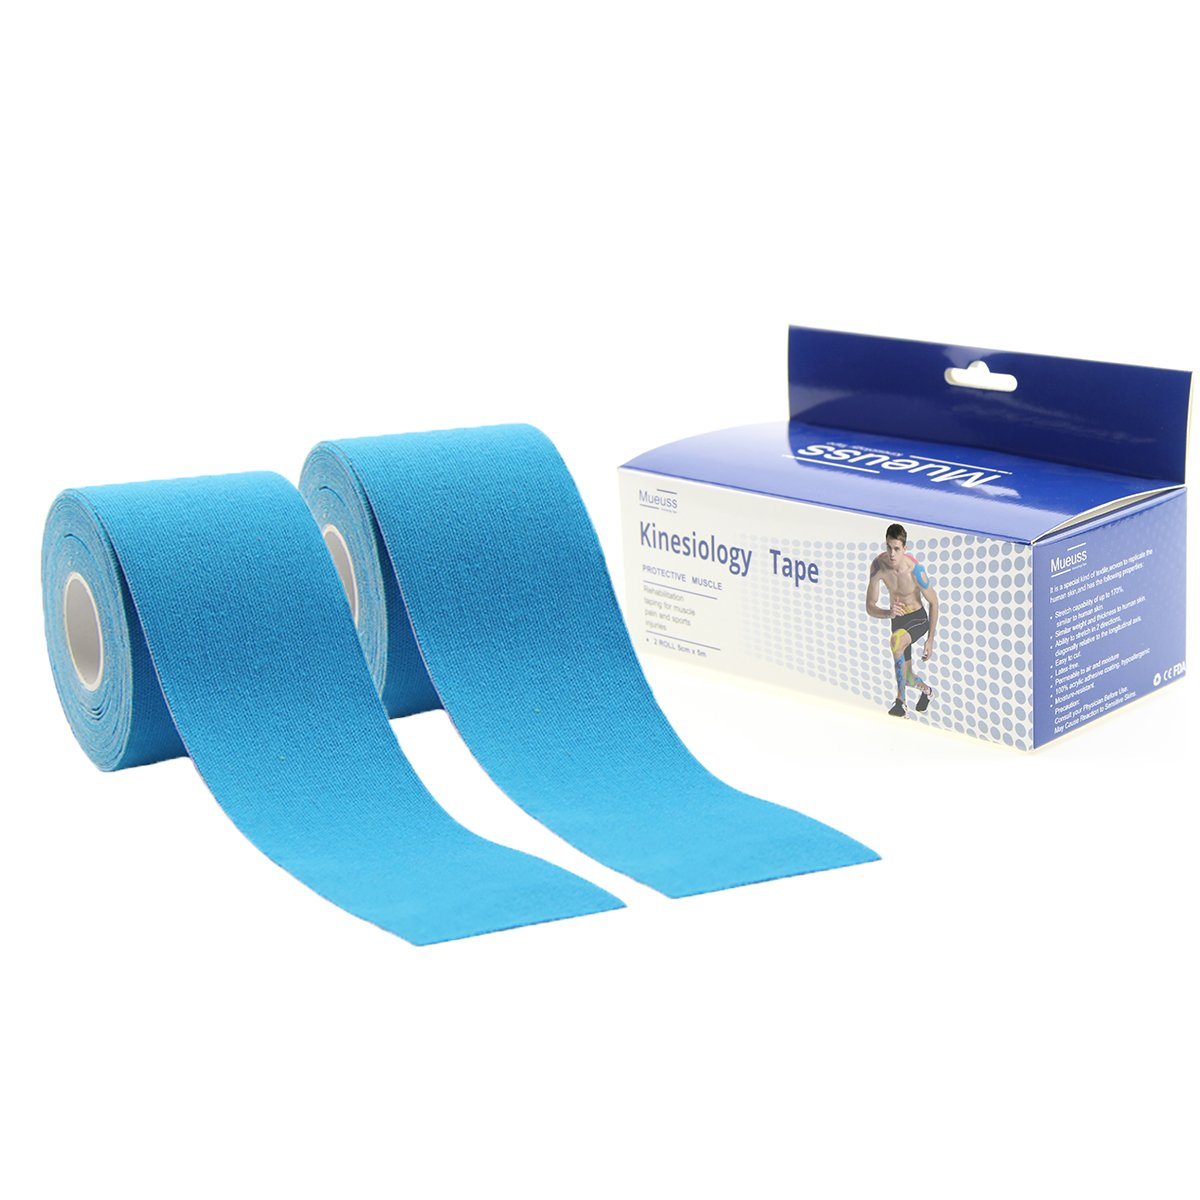 MUEUSS Kinesiology Tapes Waterproof Hypoallergenic Breathable Elastic Roll Knee Ankle Muscles Elbow Shoulder Latex Free 16.5 ft Uncut (Blue (2 pc/Set))